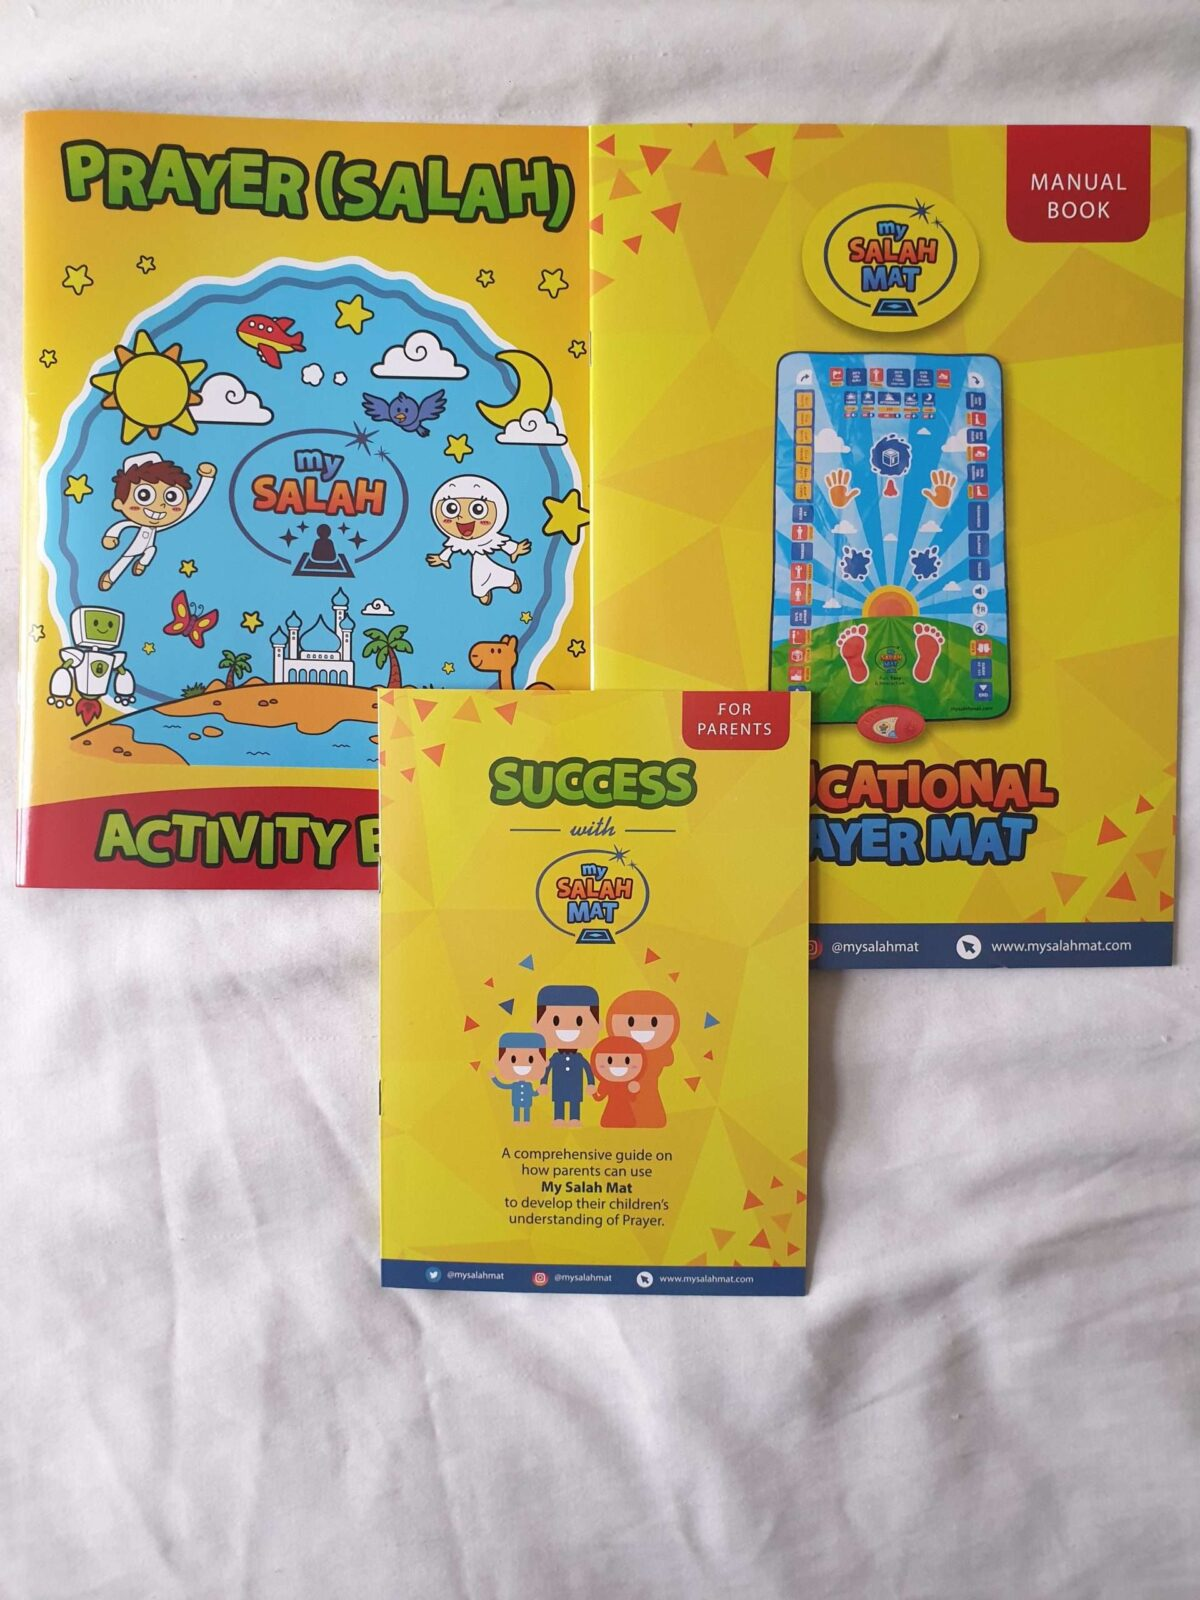 Activity Book, Manual Book and for Parents